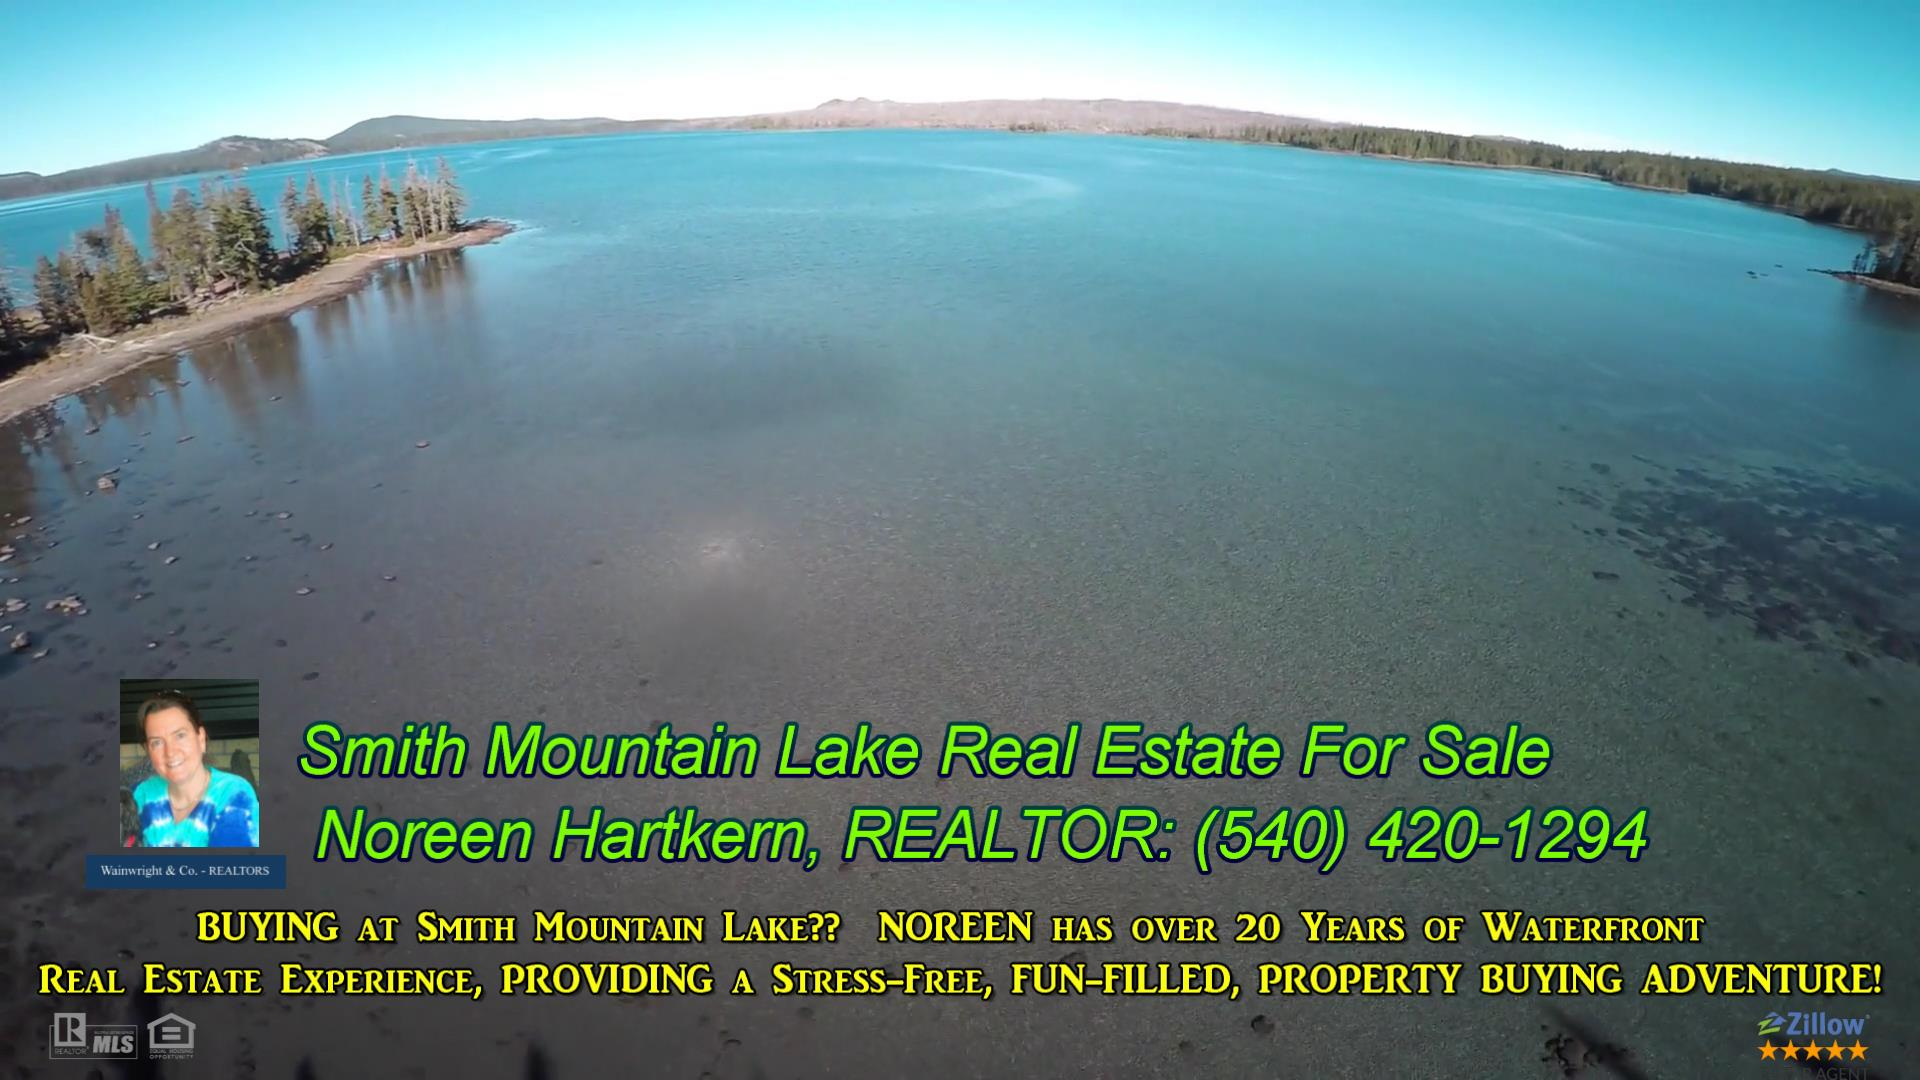 BUYING at Smith Mountain Lake? Noreen has over 20 Years of Waterfront Real Estate Experience, and Provides a Stress-Free, FUN, Property Buying Adventure! FACEBOOK Message Me to Get On My Private Smith Mountain Lake MLS List and Smith Mountain Lake Real Estate Insiders Newsletter with Secret Tips and Tricks on How to Get Your Smith Mountain Lake Waterfront Home, Luxury Estate, Log Home, OR Waterfront Rental Home and CLOSE ON IT in As Little As 3 Weeks!!! *** Schedule Your FREE Strategy Session Today! Call or Text NOW 540-420-1294 ***